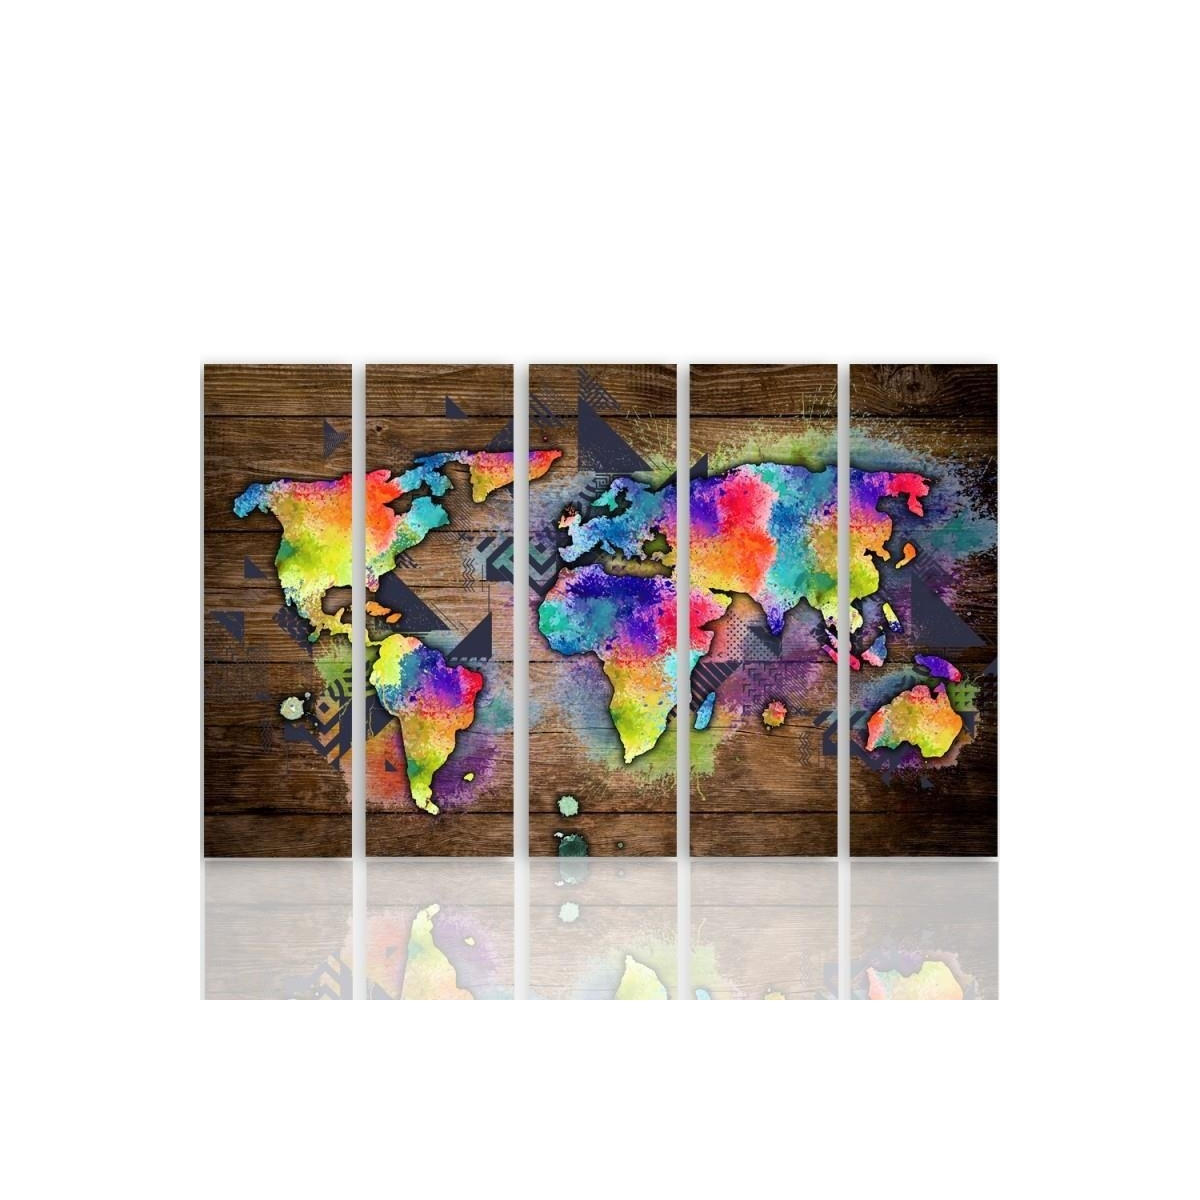 Five Part Picture On Canvas, Pentaptych, Type C, Colorful Map Of The World On The Boards 100x150